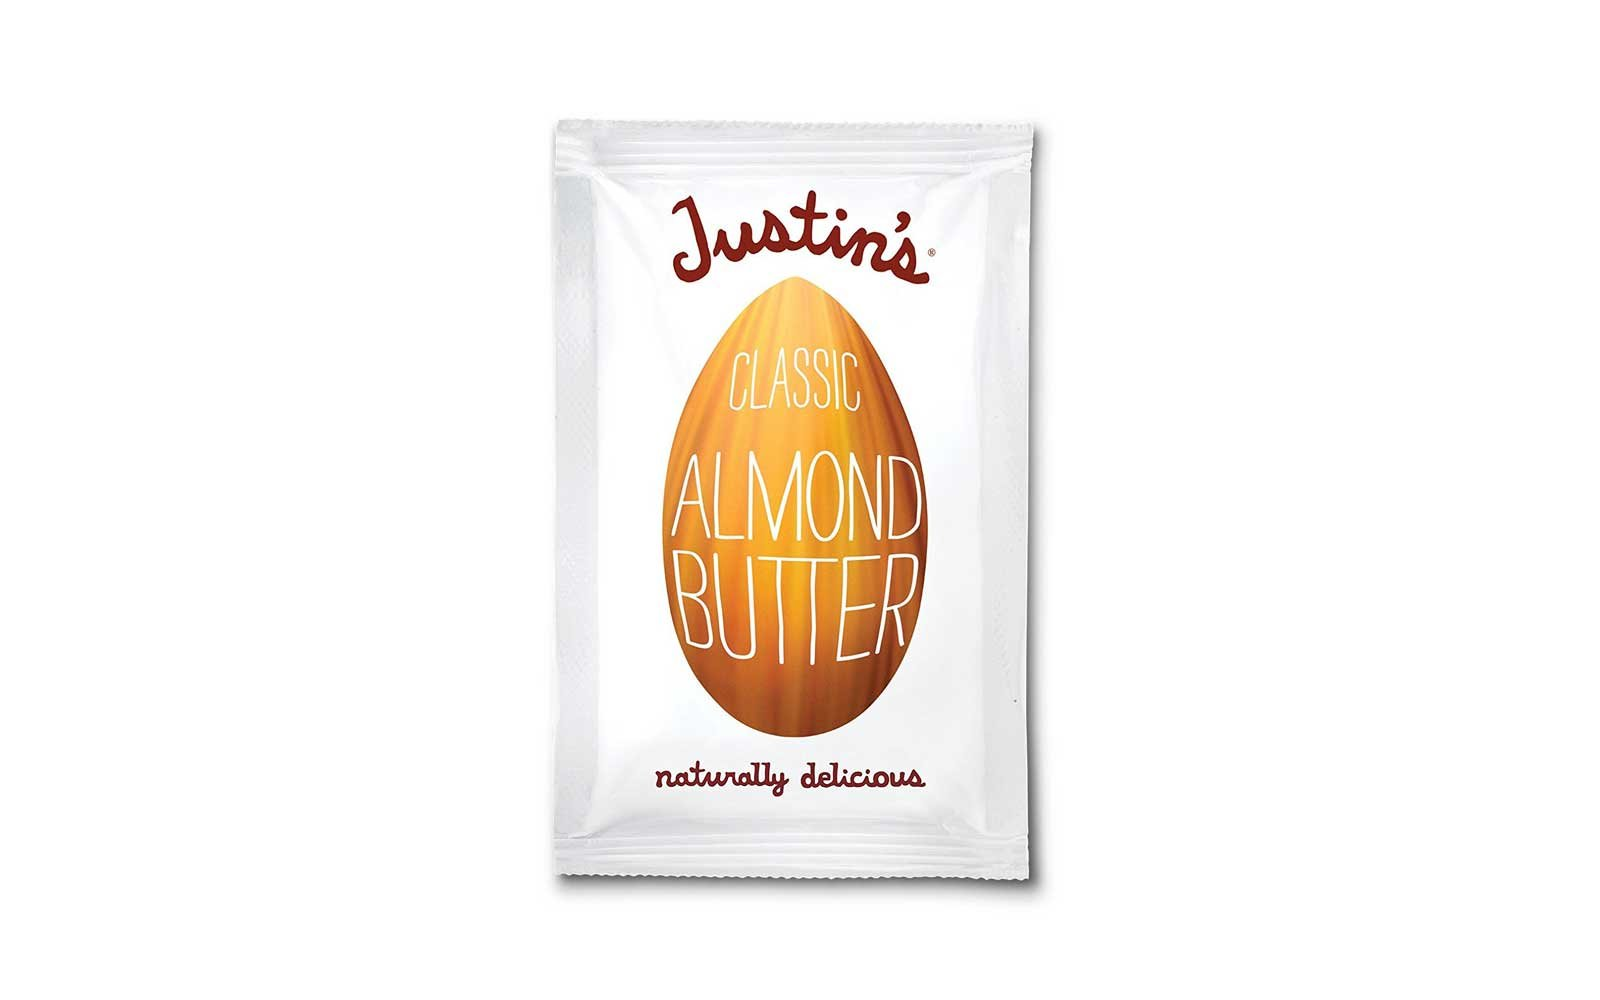 Justin's Nut Butter Natural Classic Almond Butter